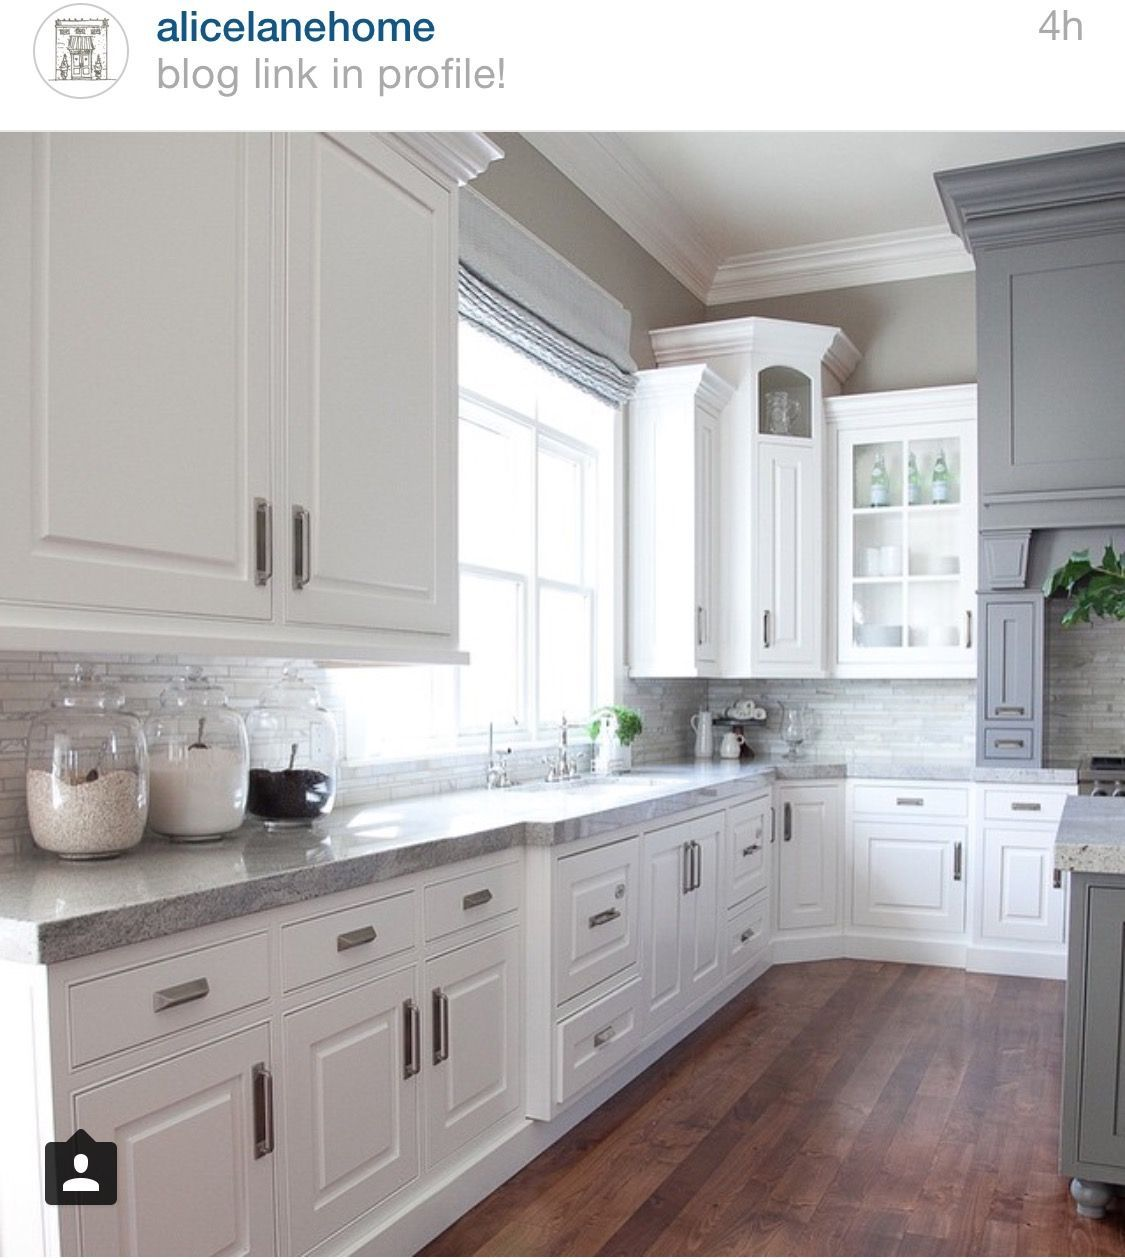 37+ Two Tone Kitchen Cabinet Ideas To Avoid Boredom in Your Home ...